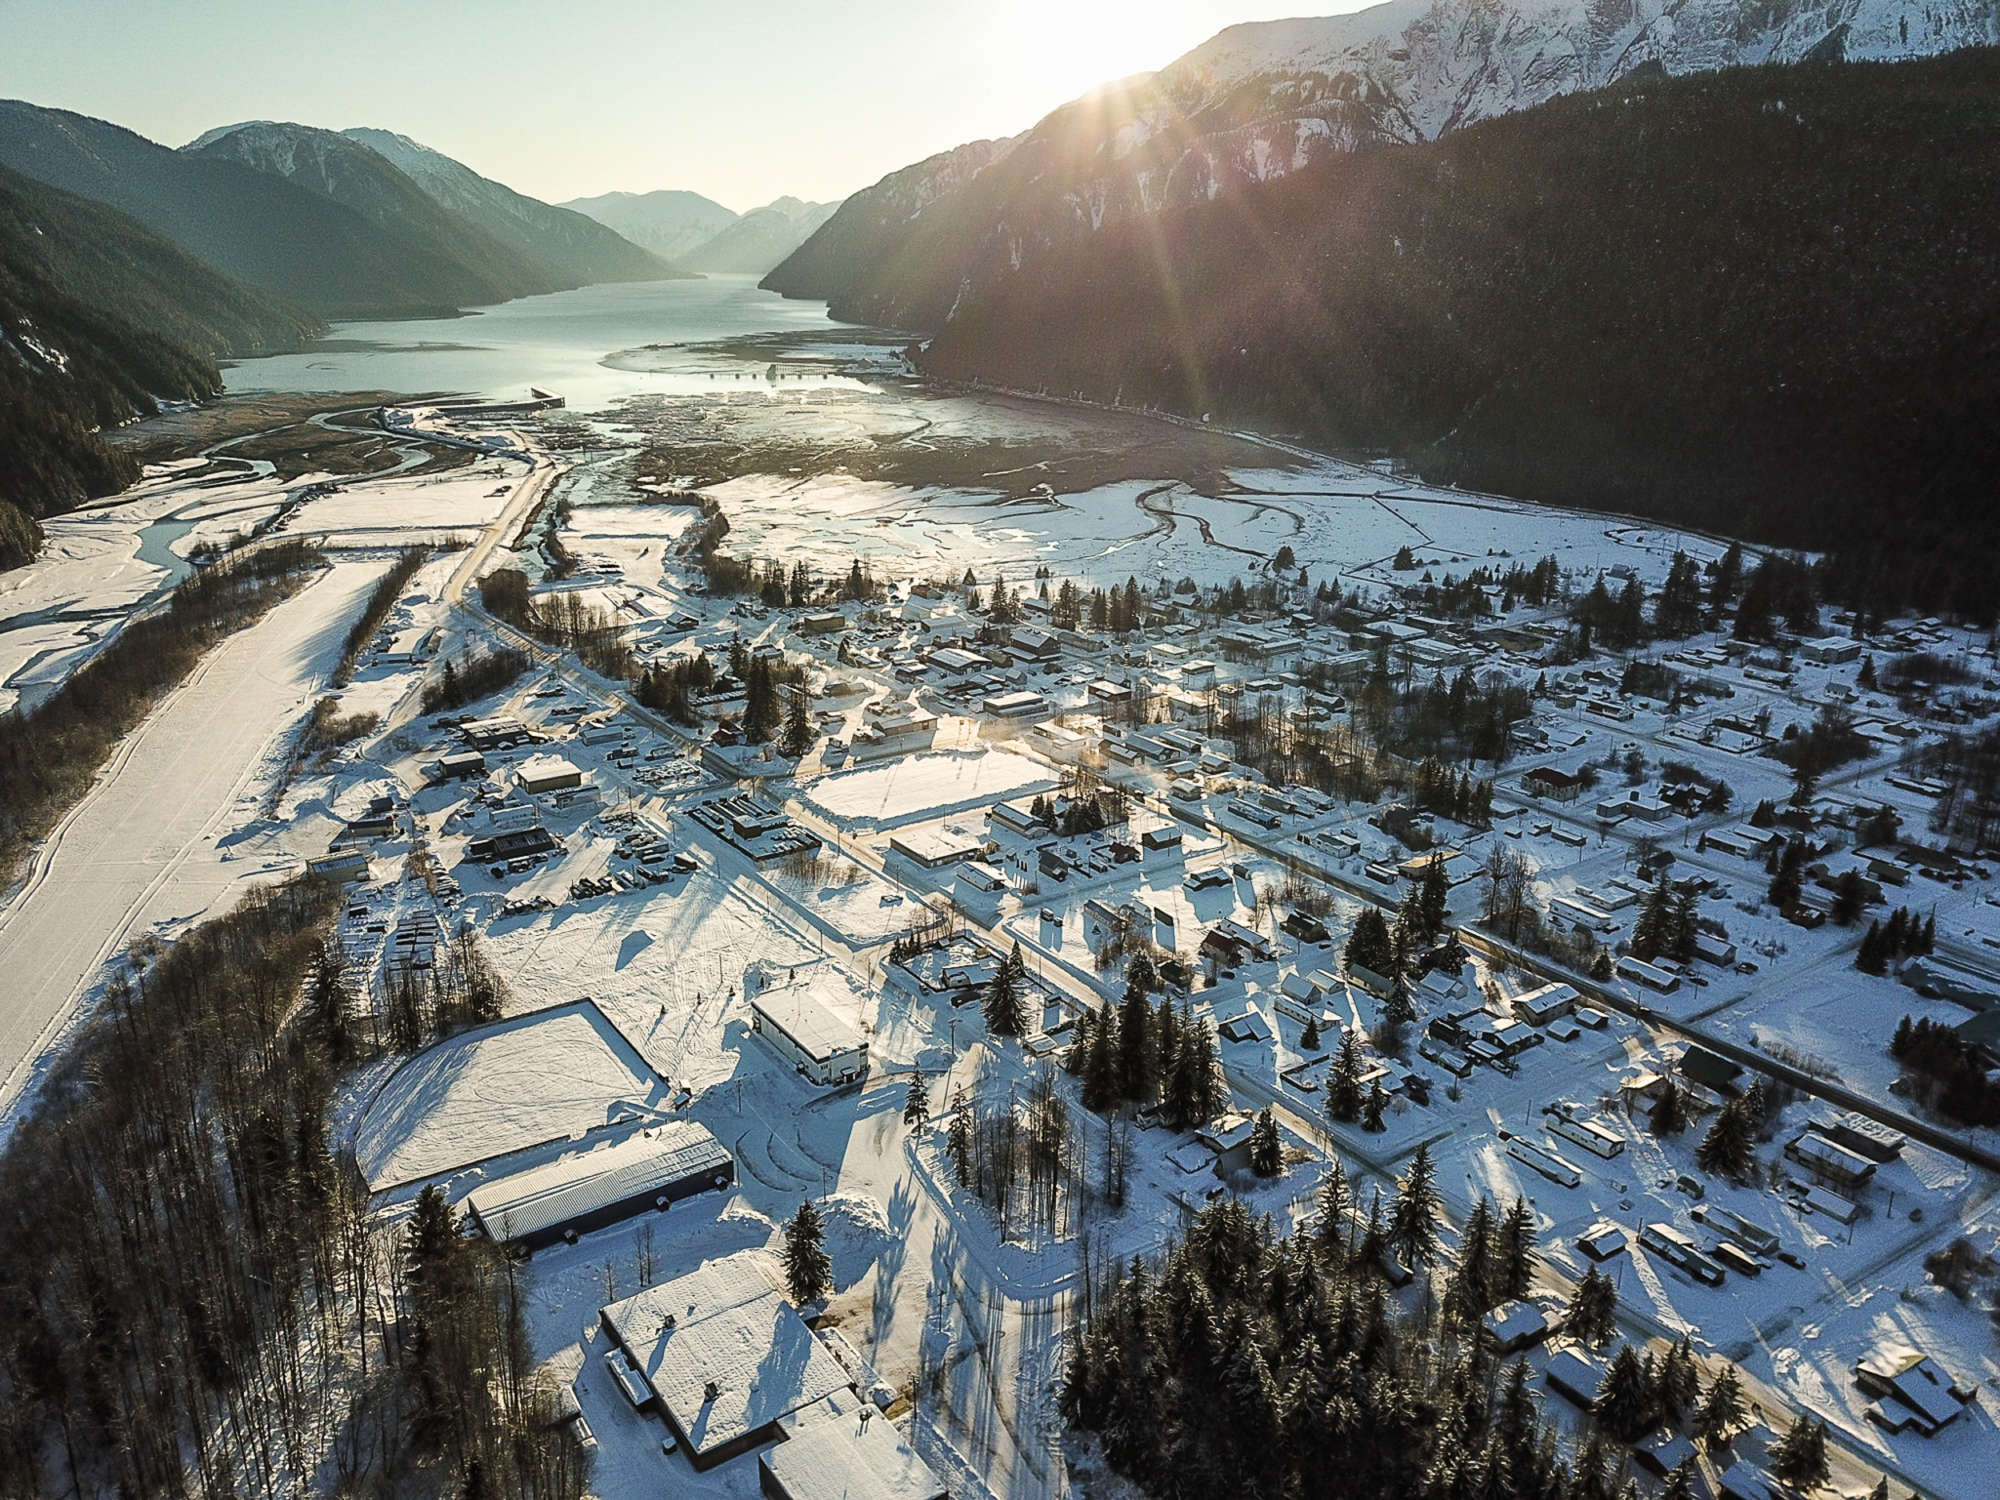 The Town of Stewart BC - Home of Last Frontier Heliskiing's Ripley Creek Operation